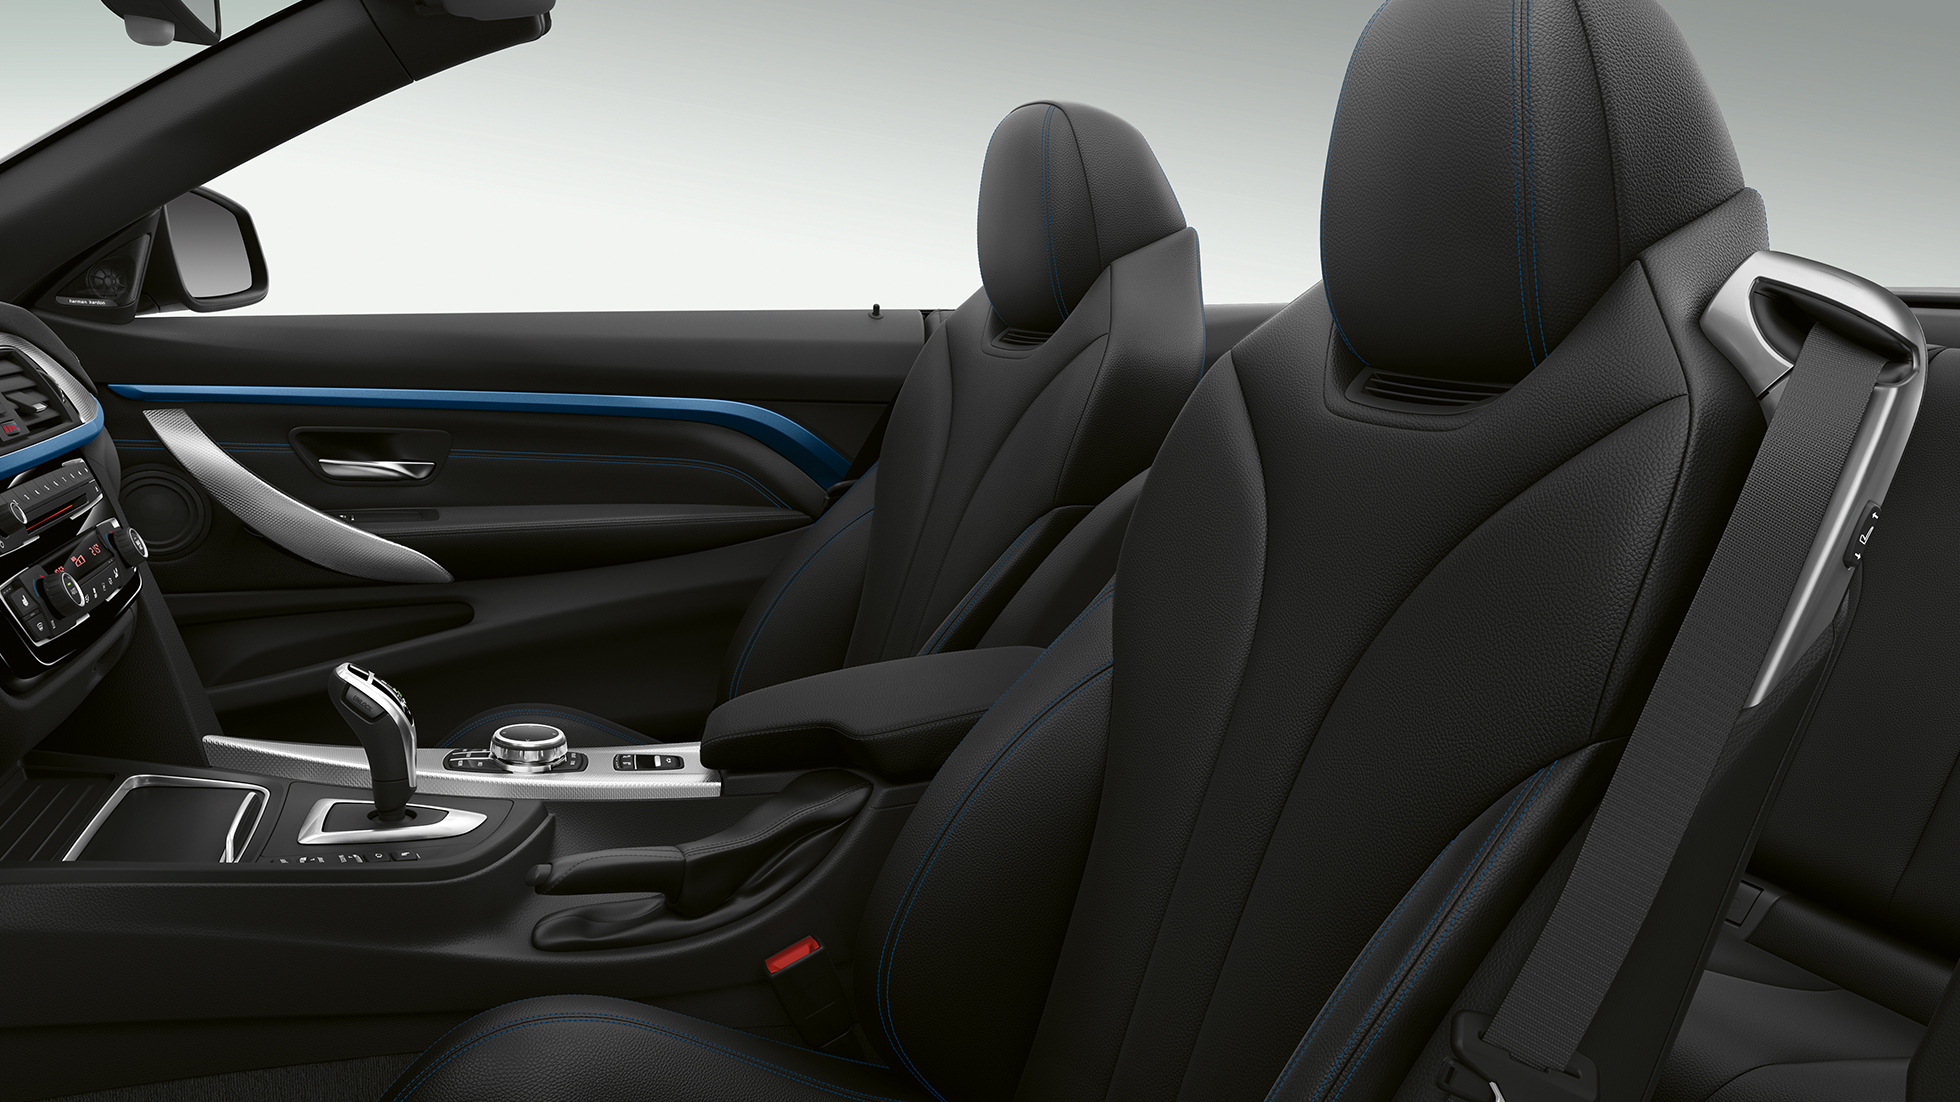 BMW 4 Serie Cabrio, Model M Sport interieur